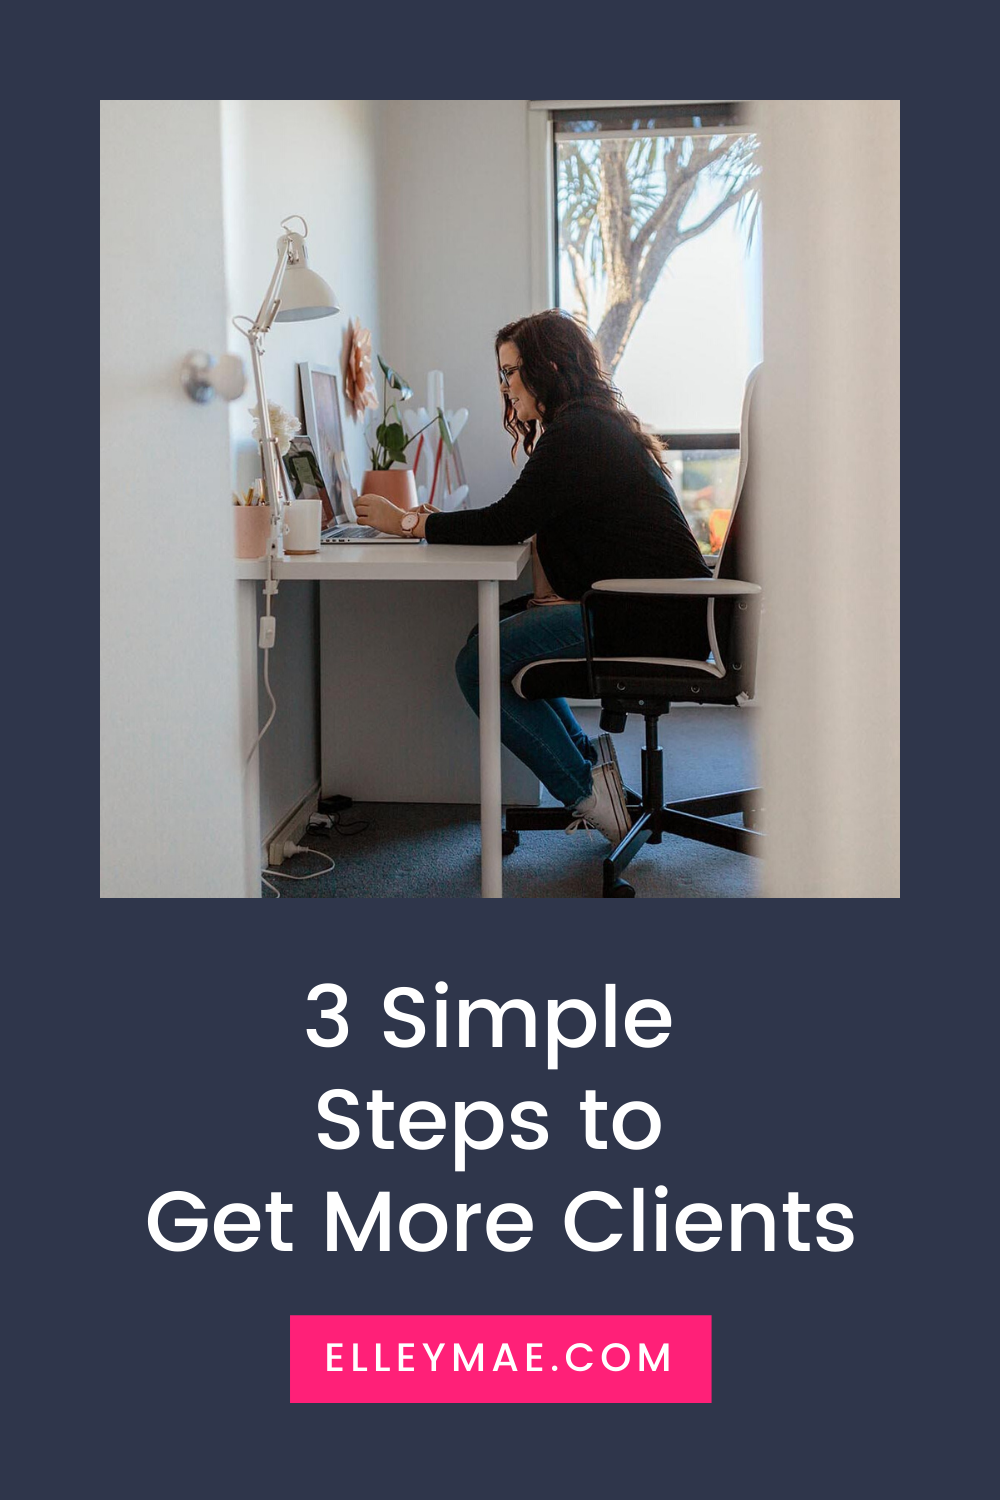 3 Simple Steps to Get More Clients